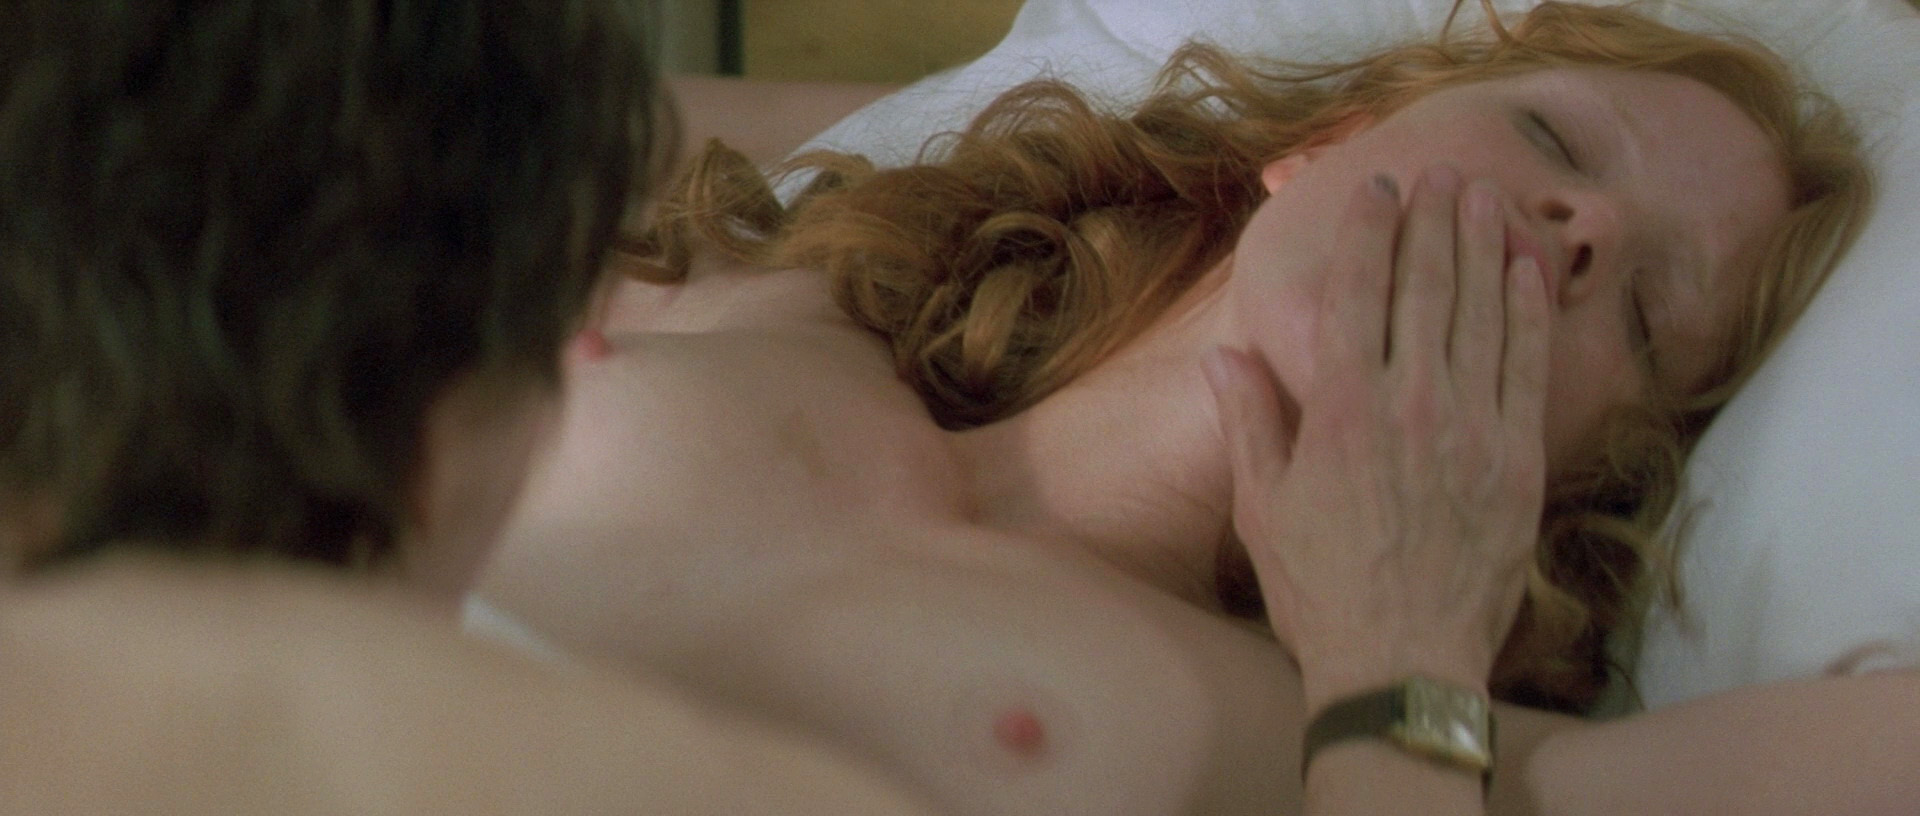 Jessica Chastain - breasts